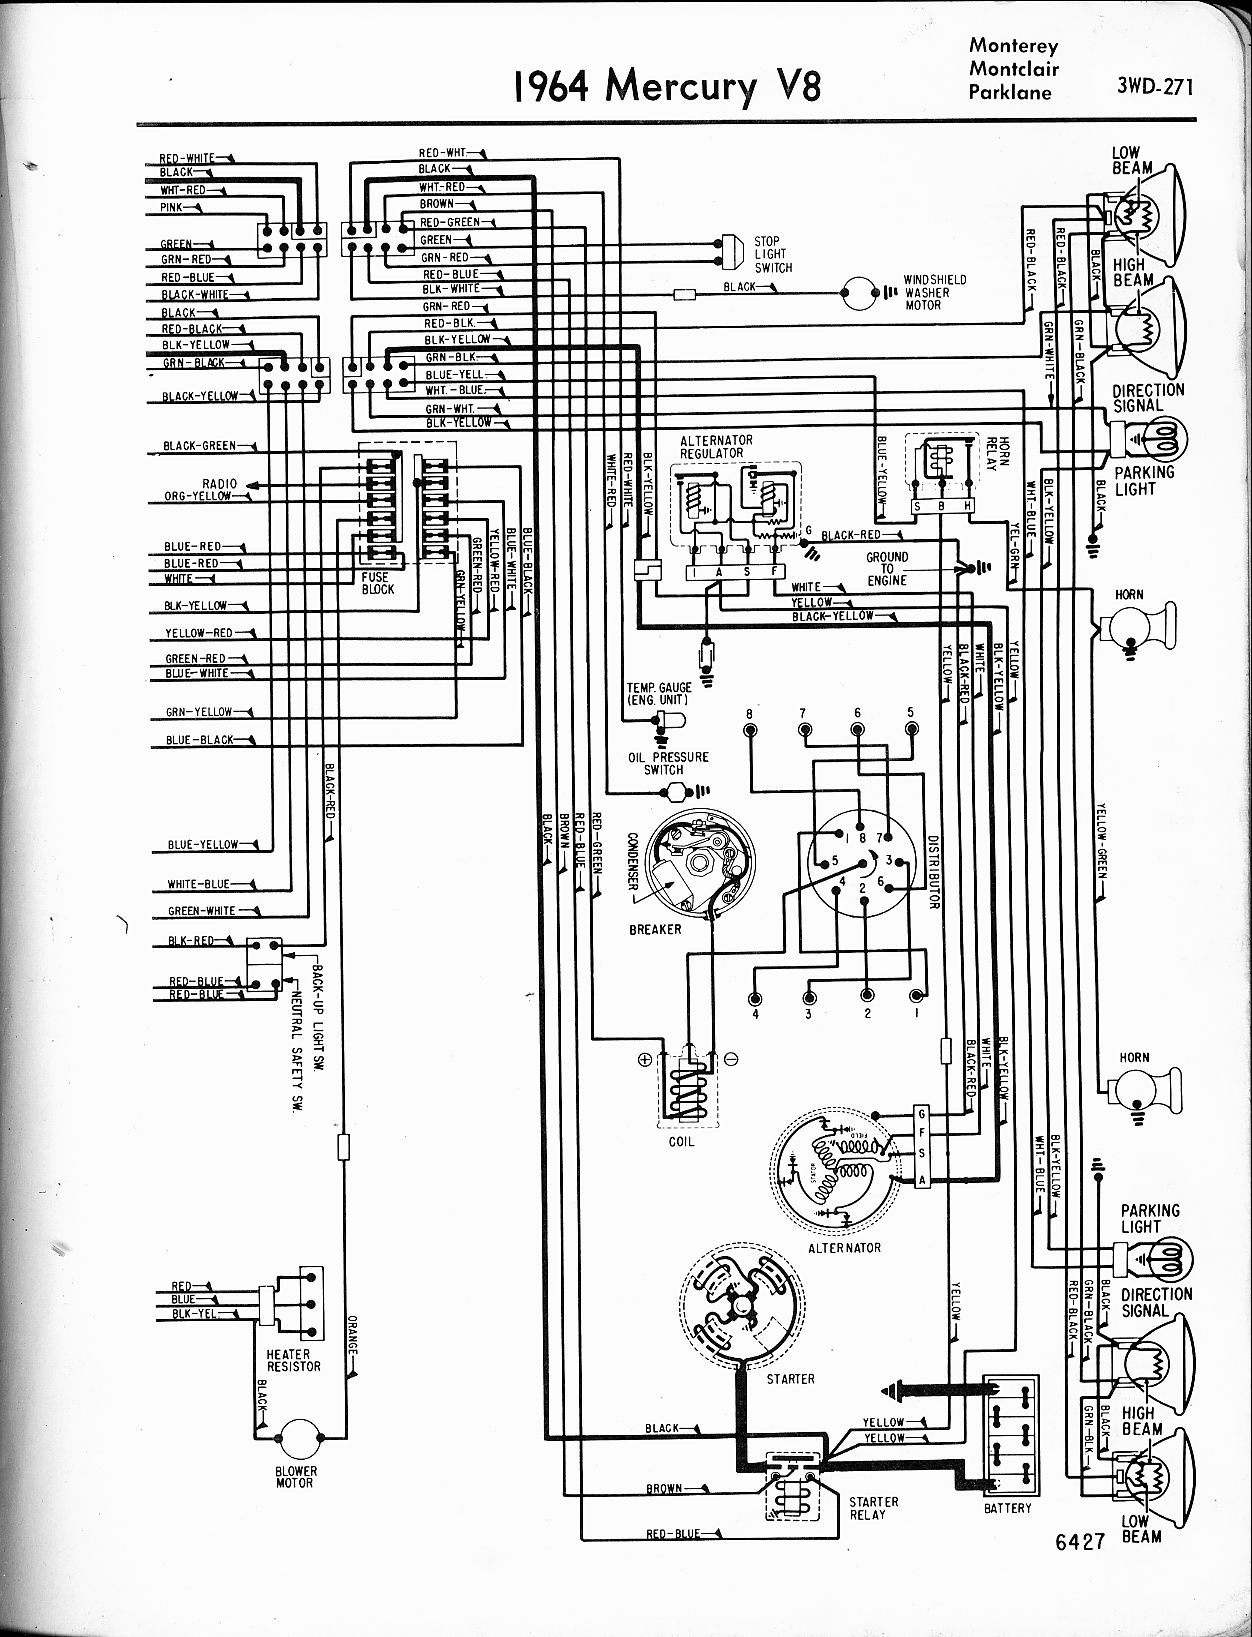 hight resolution of wrg 6251 64 corvette fuse box1964 v8 monterey montclair parklane right page